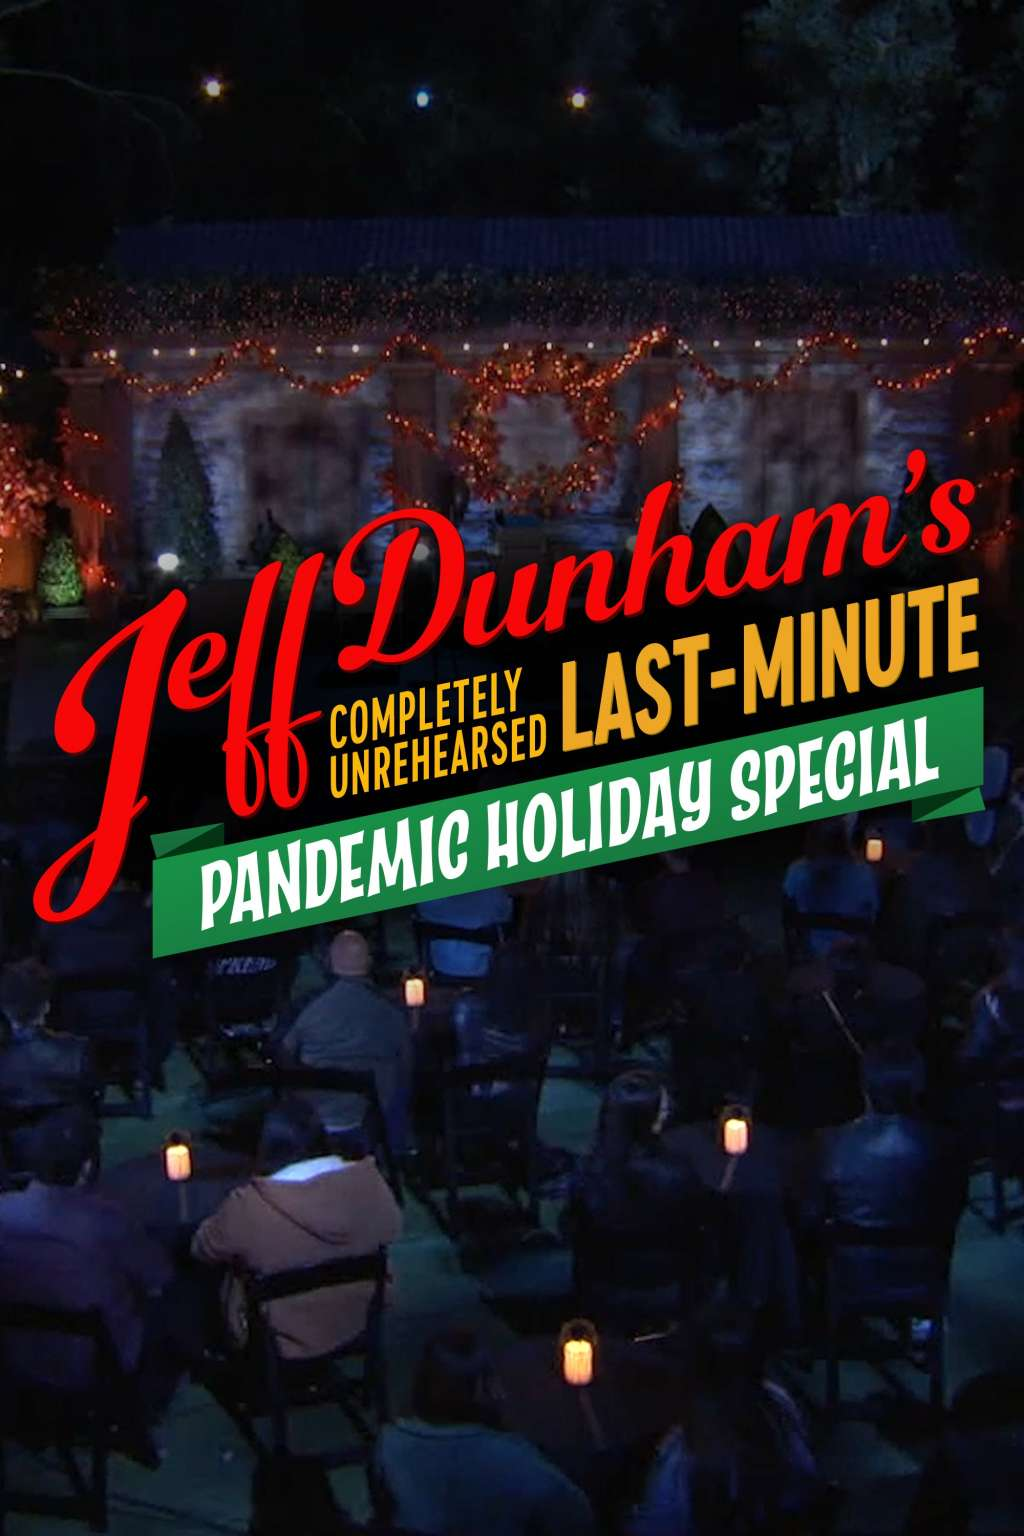 Completely Unrehearsed Last Minute Pandemic Holiday Special kapak